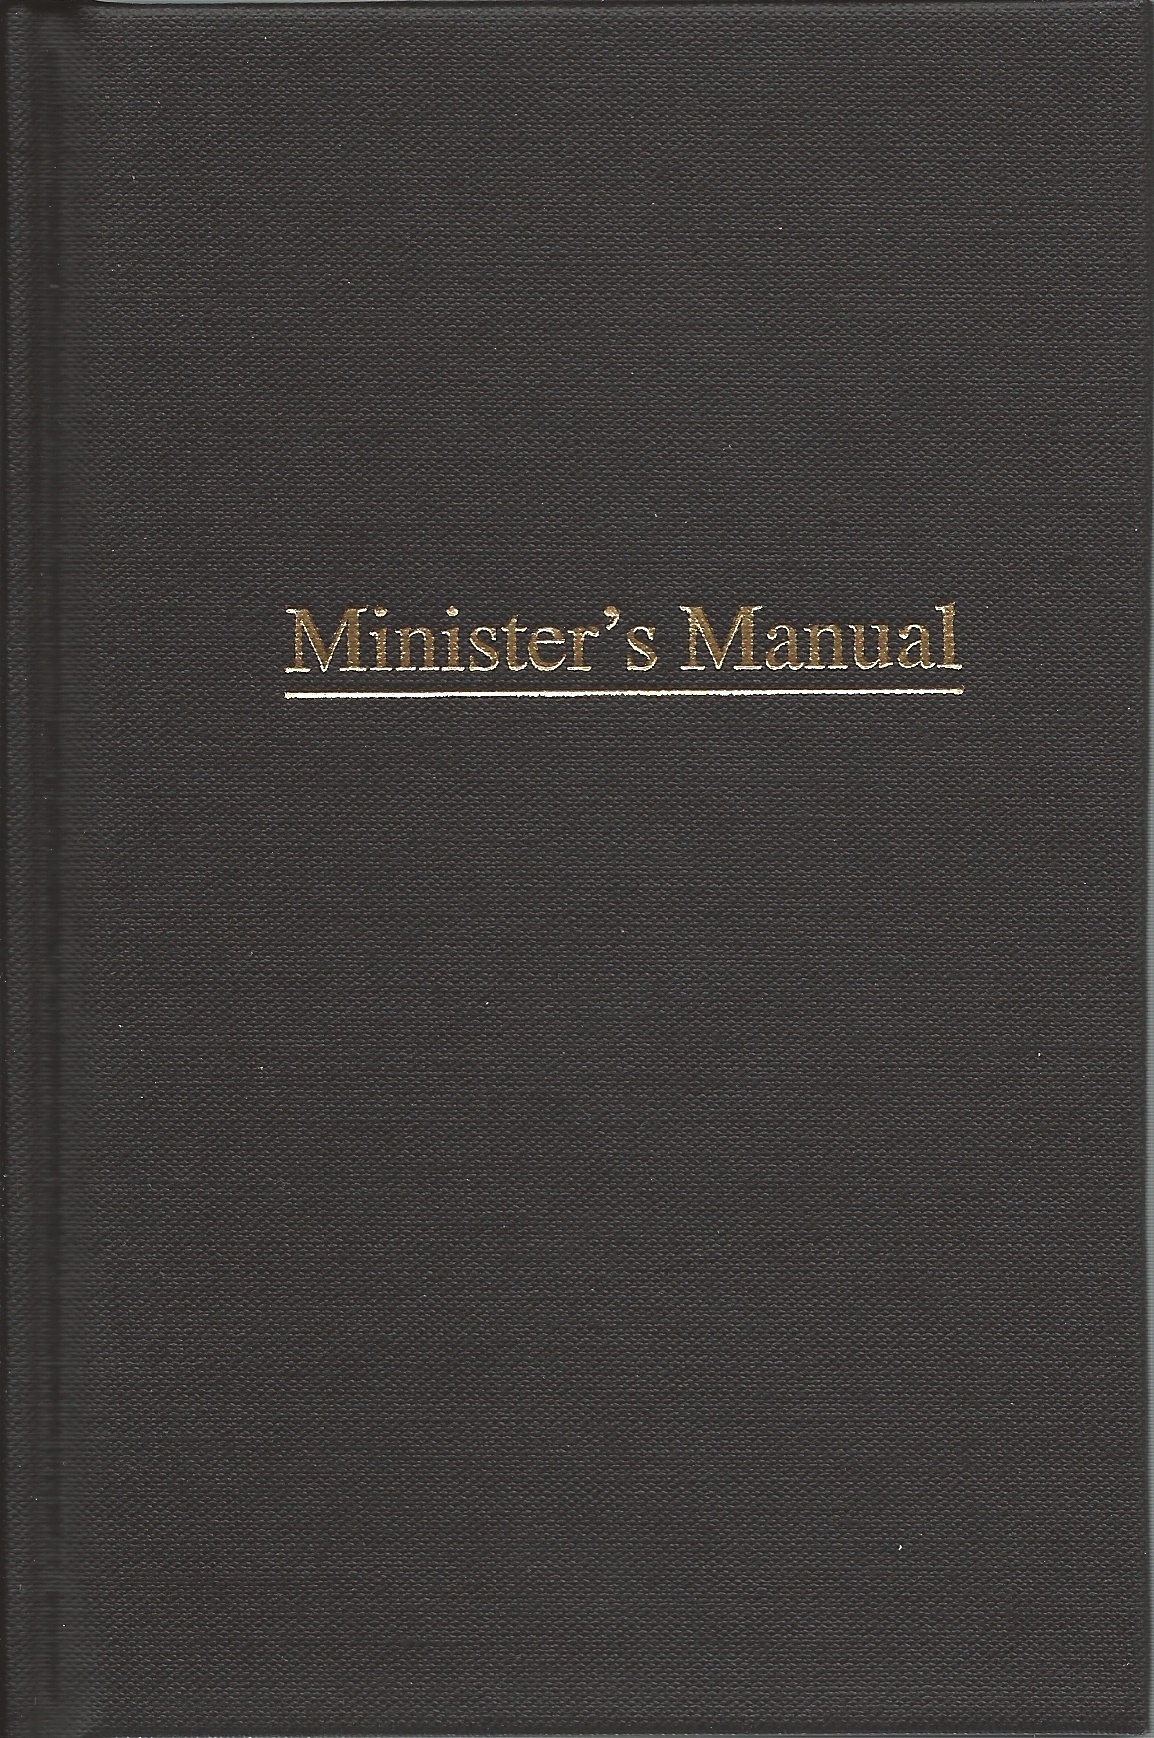 Books For Those In The Ministry